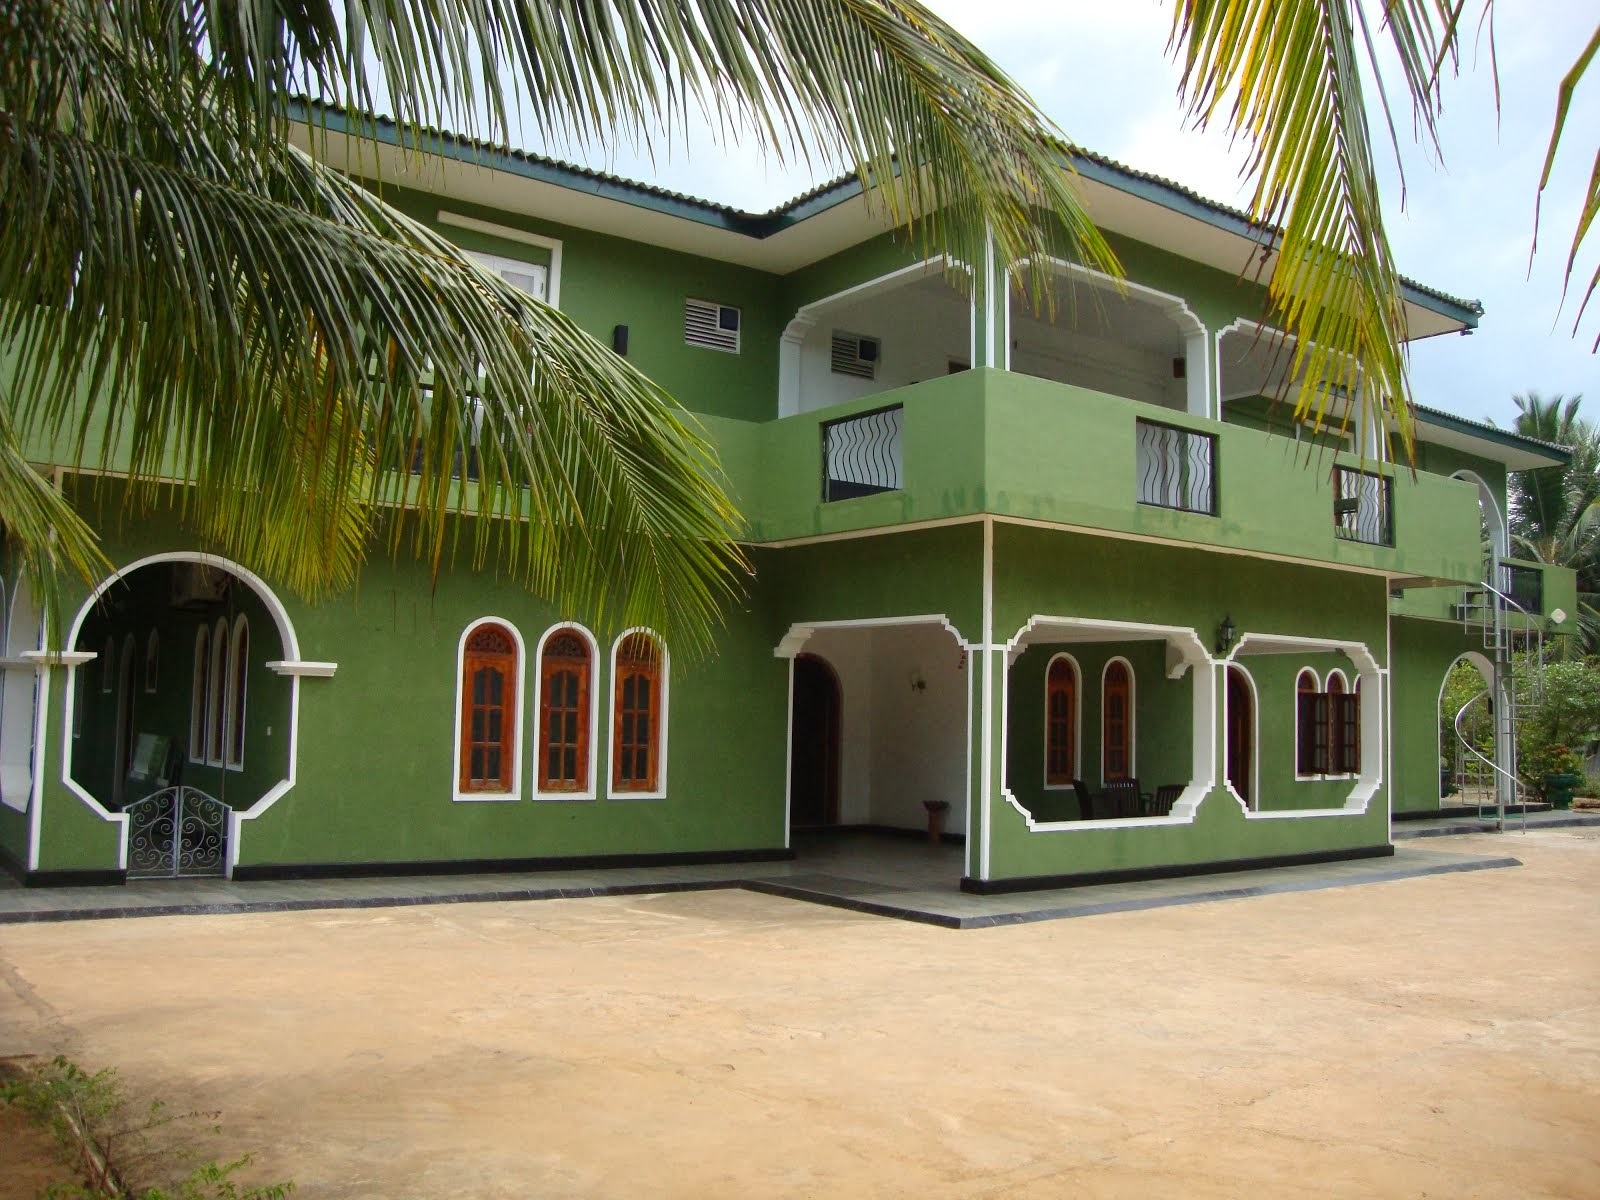 Nandawanam Guest House is a guest house in Kalhudah